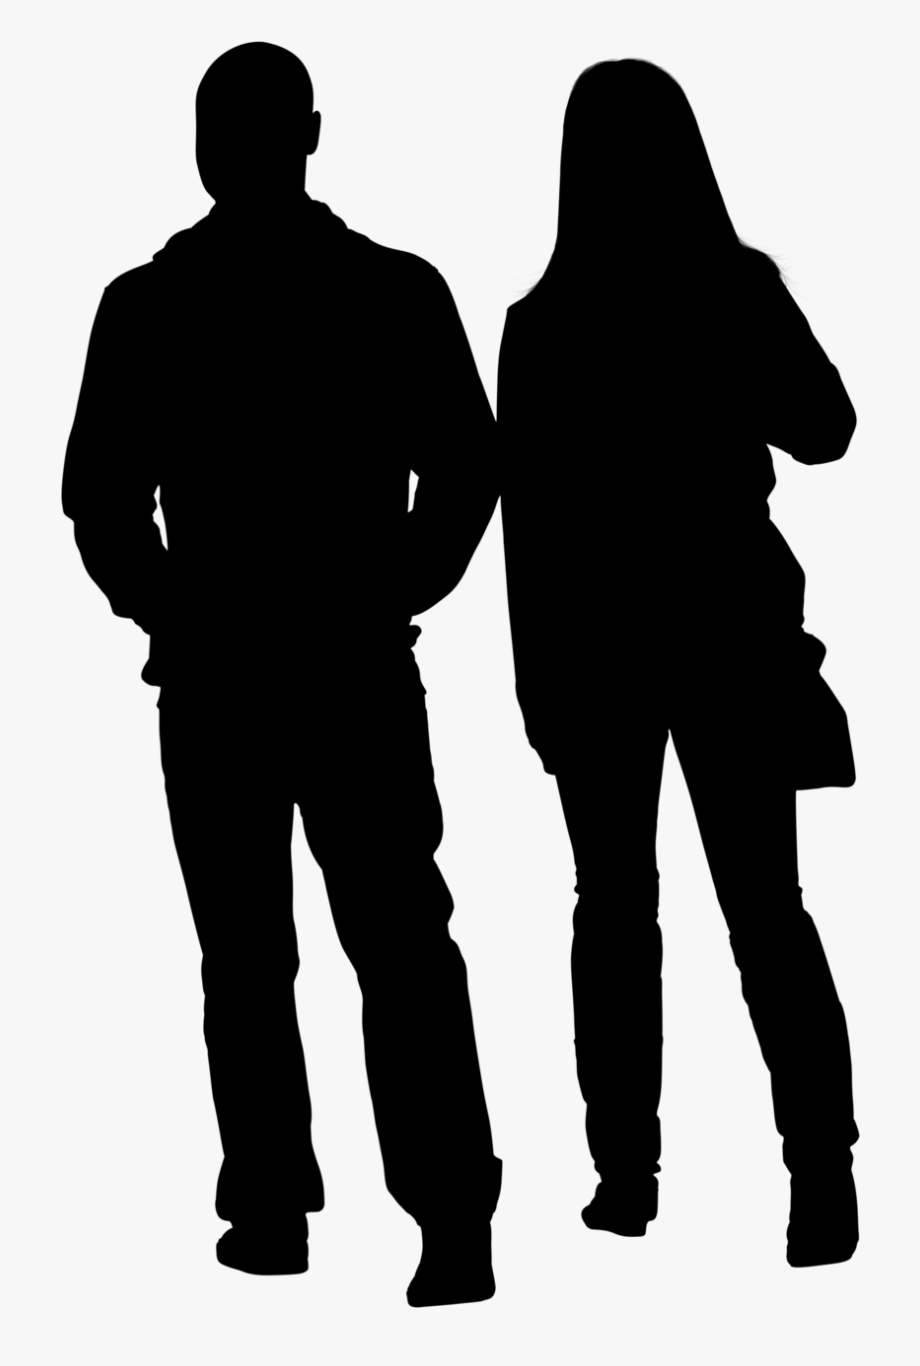 Silhouette People Png.